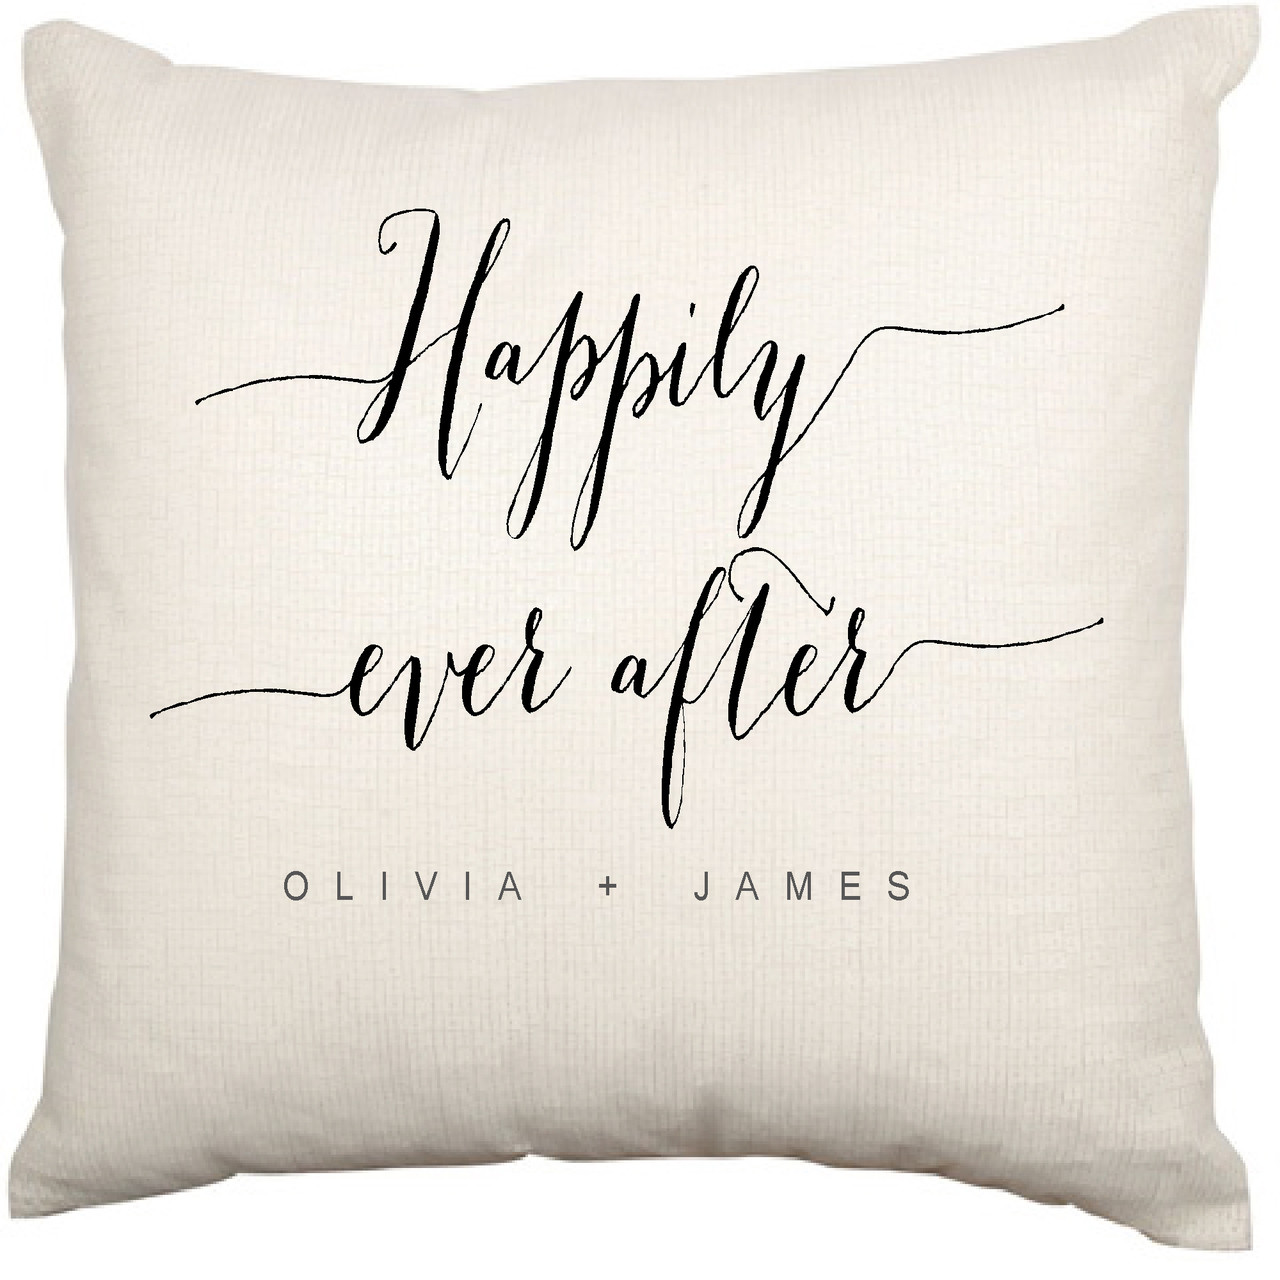 personalised couples cushion cover (happily ever after)  heavenly  - personalised couples cushion cover (happily ever after)